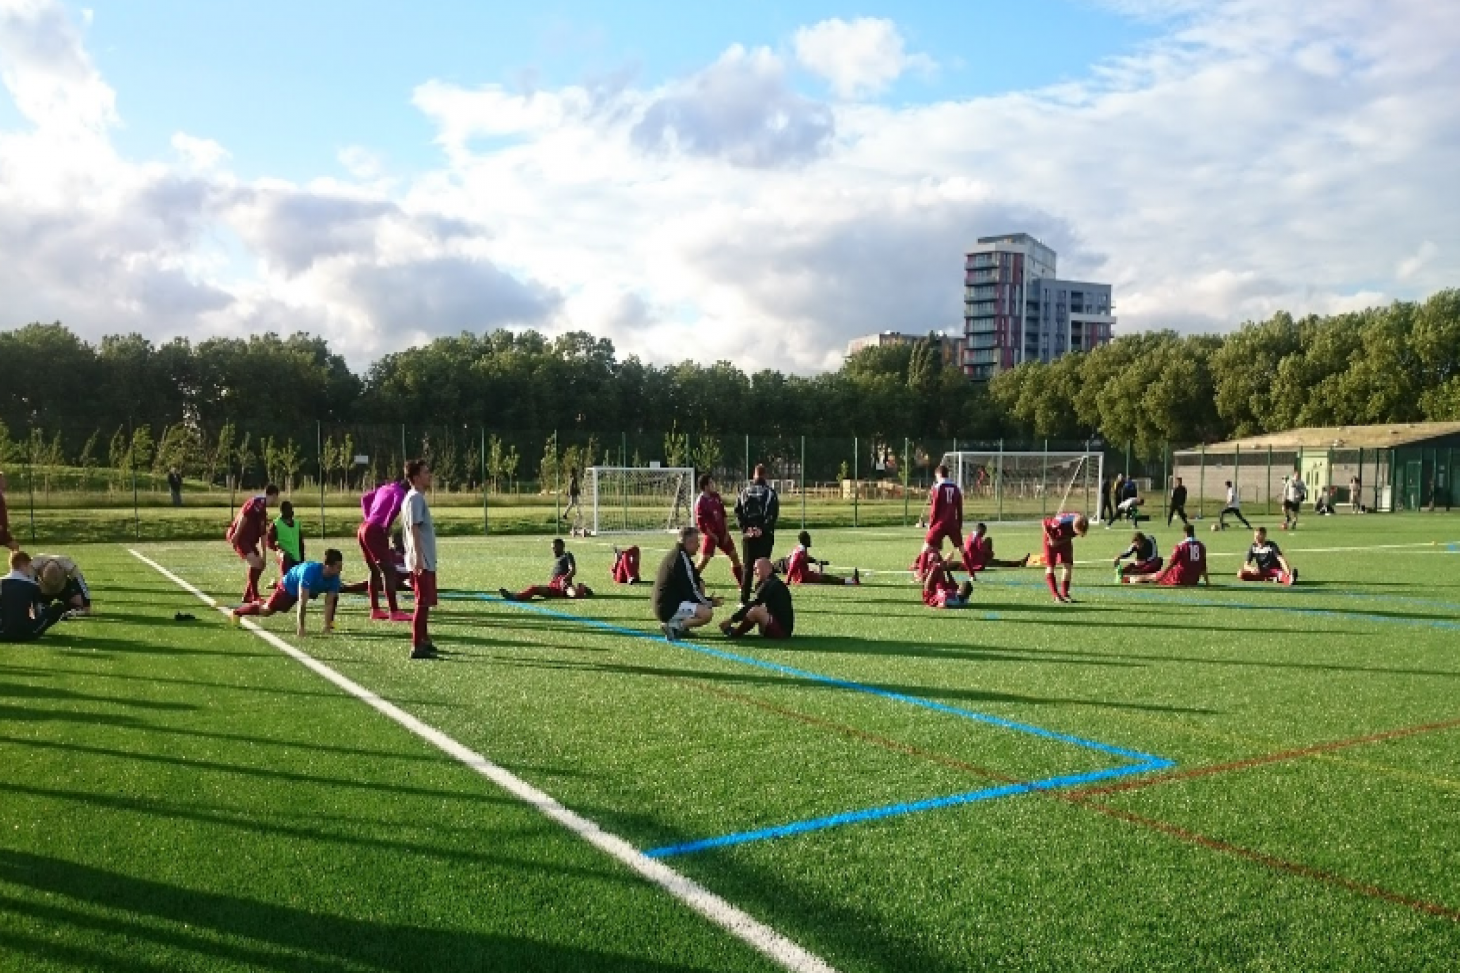 Mabley Green 11 a side | 3G Astroturf football pitch